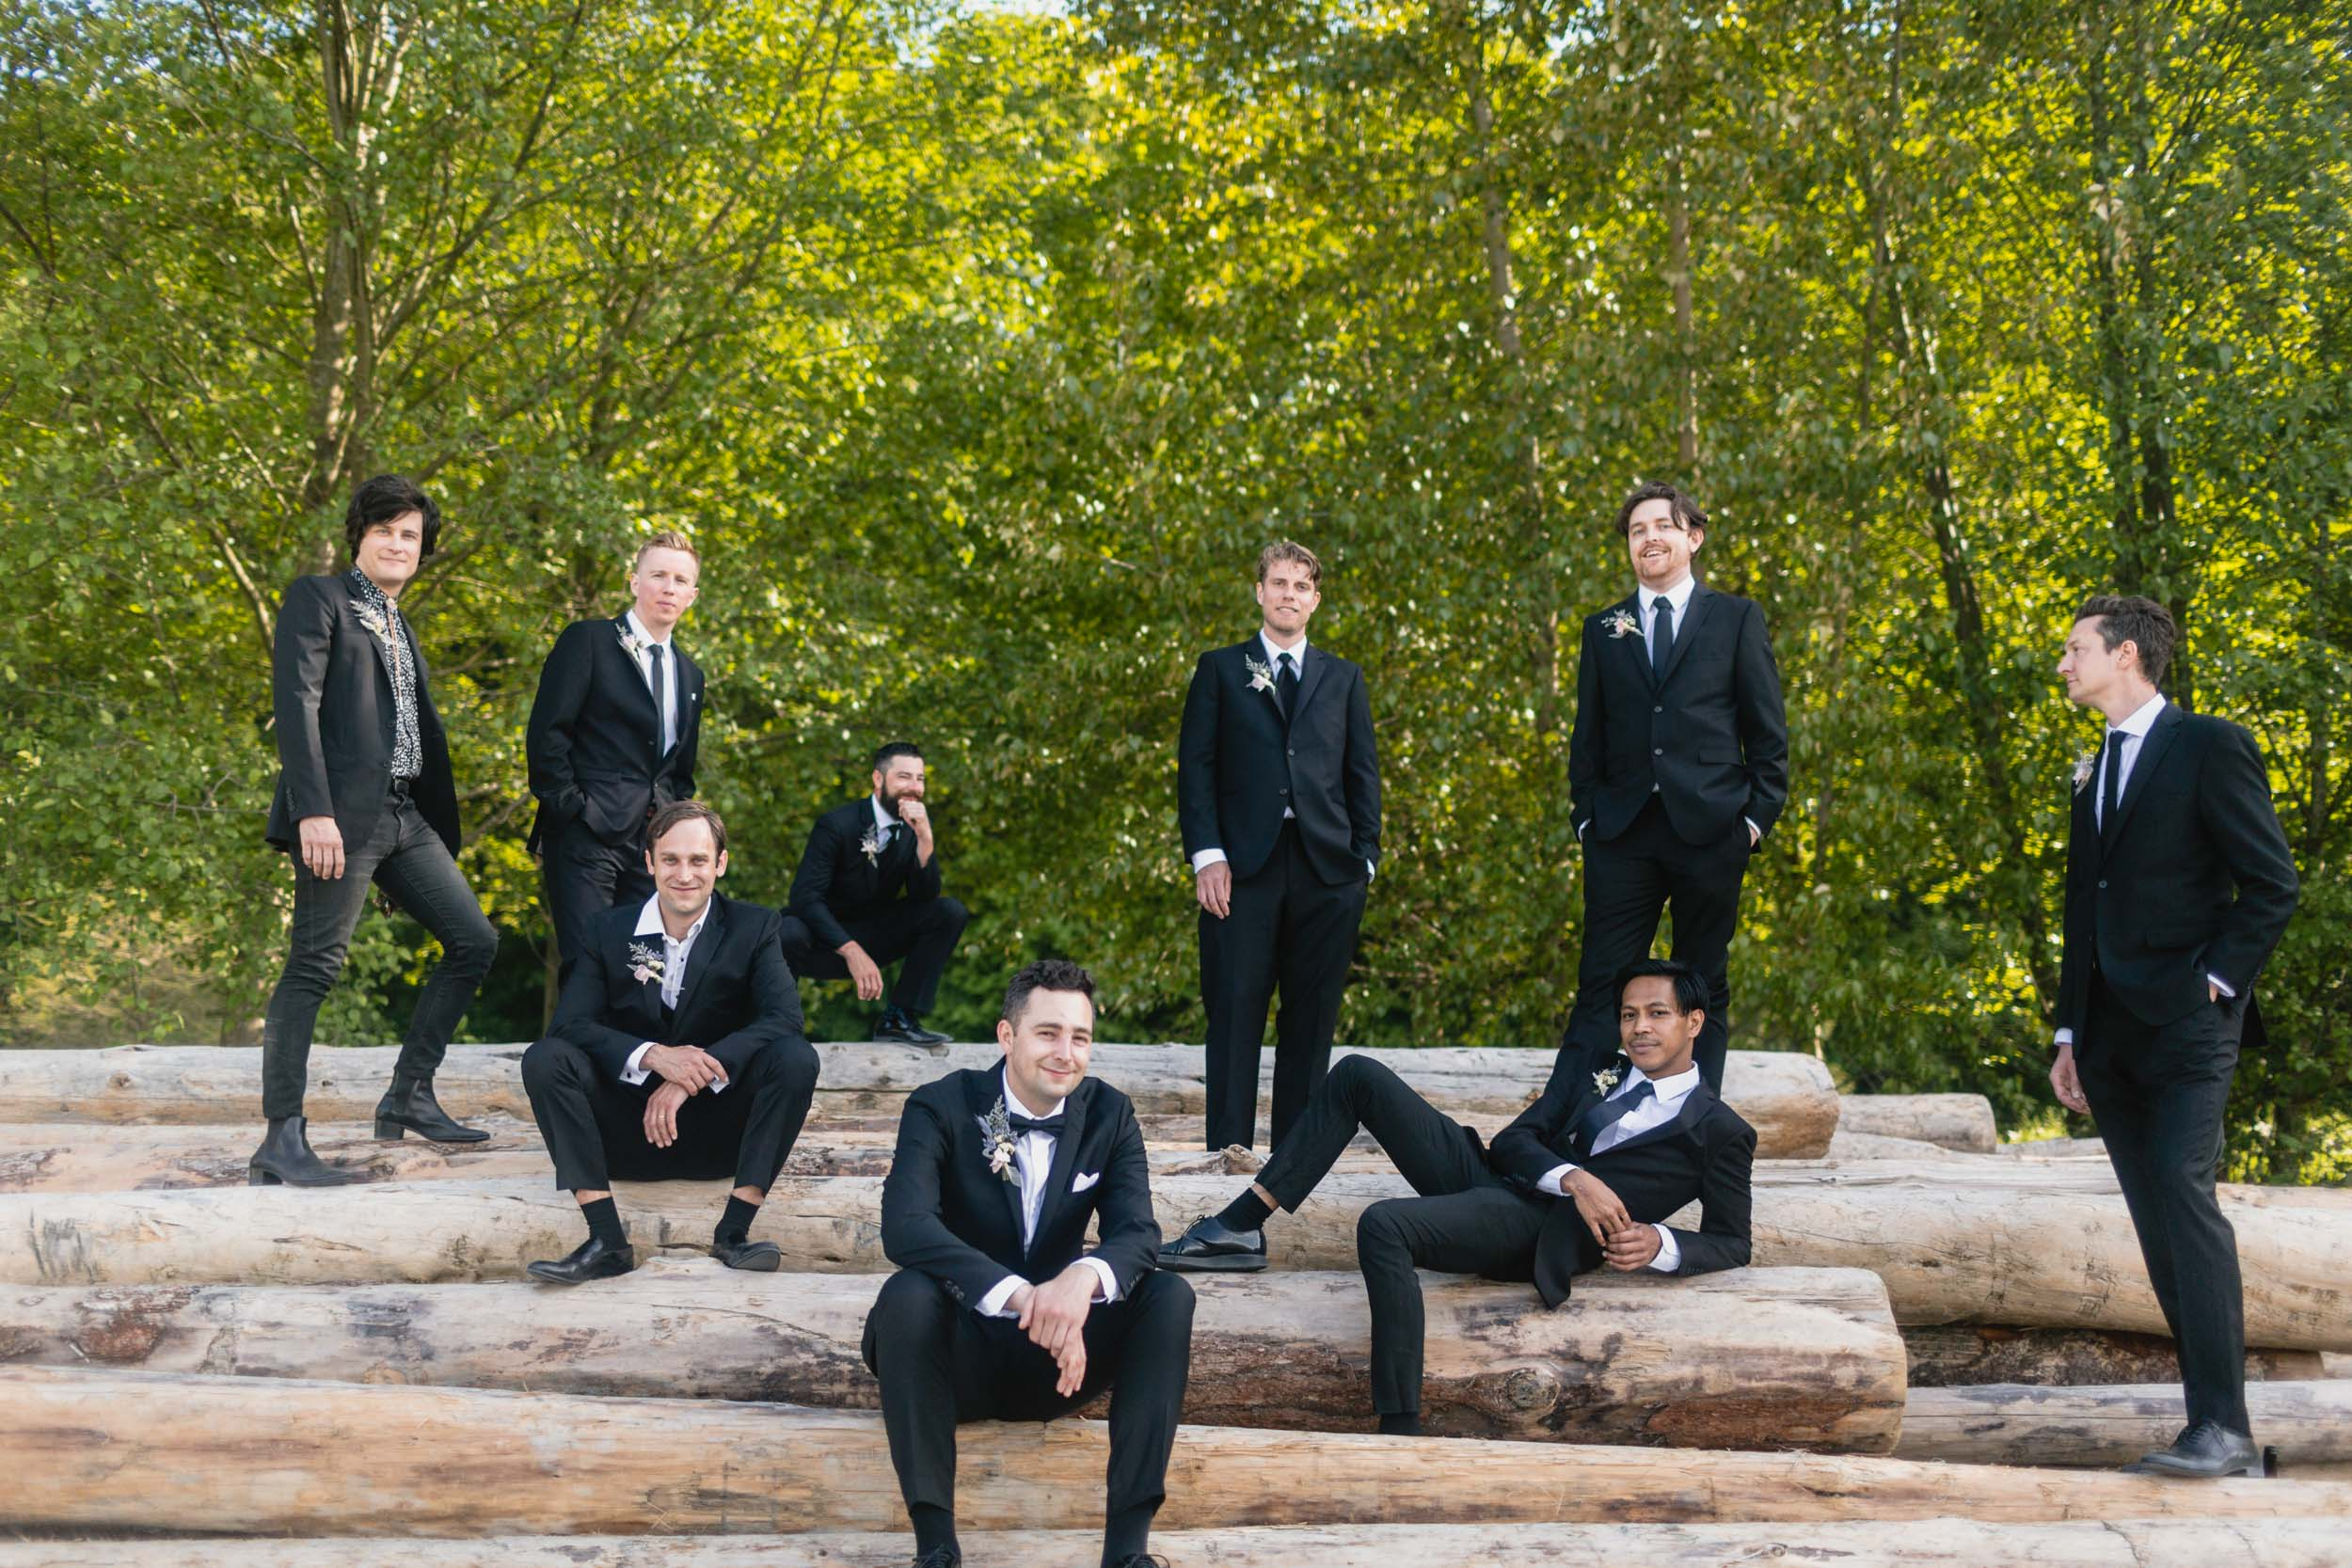 Groom and groomsmen at beach with logs